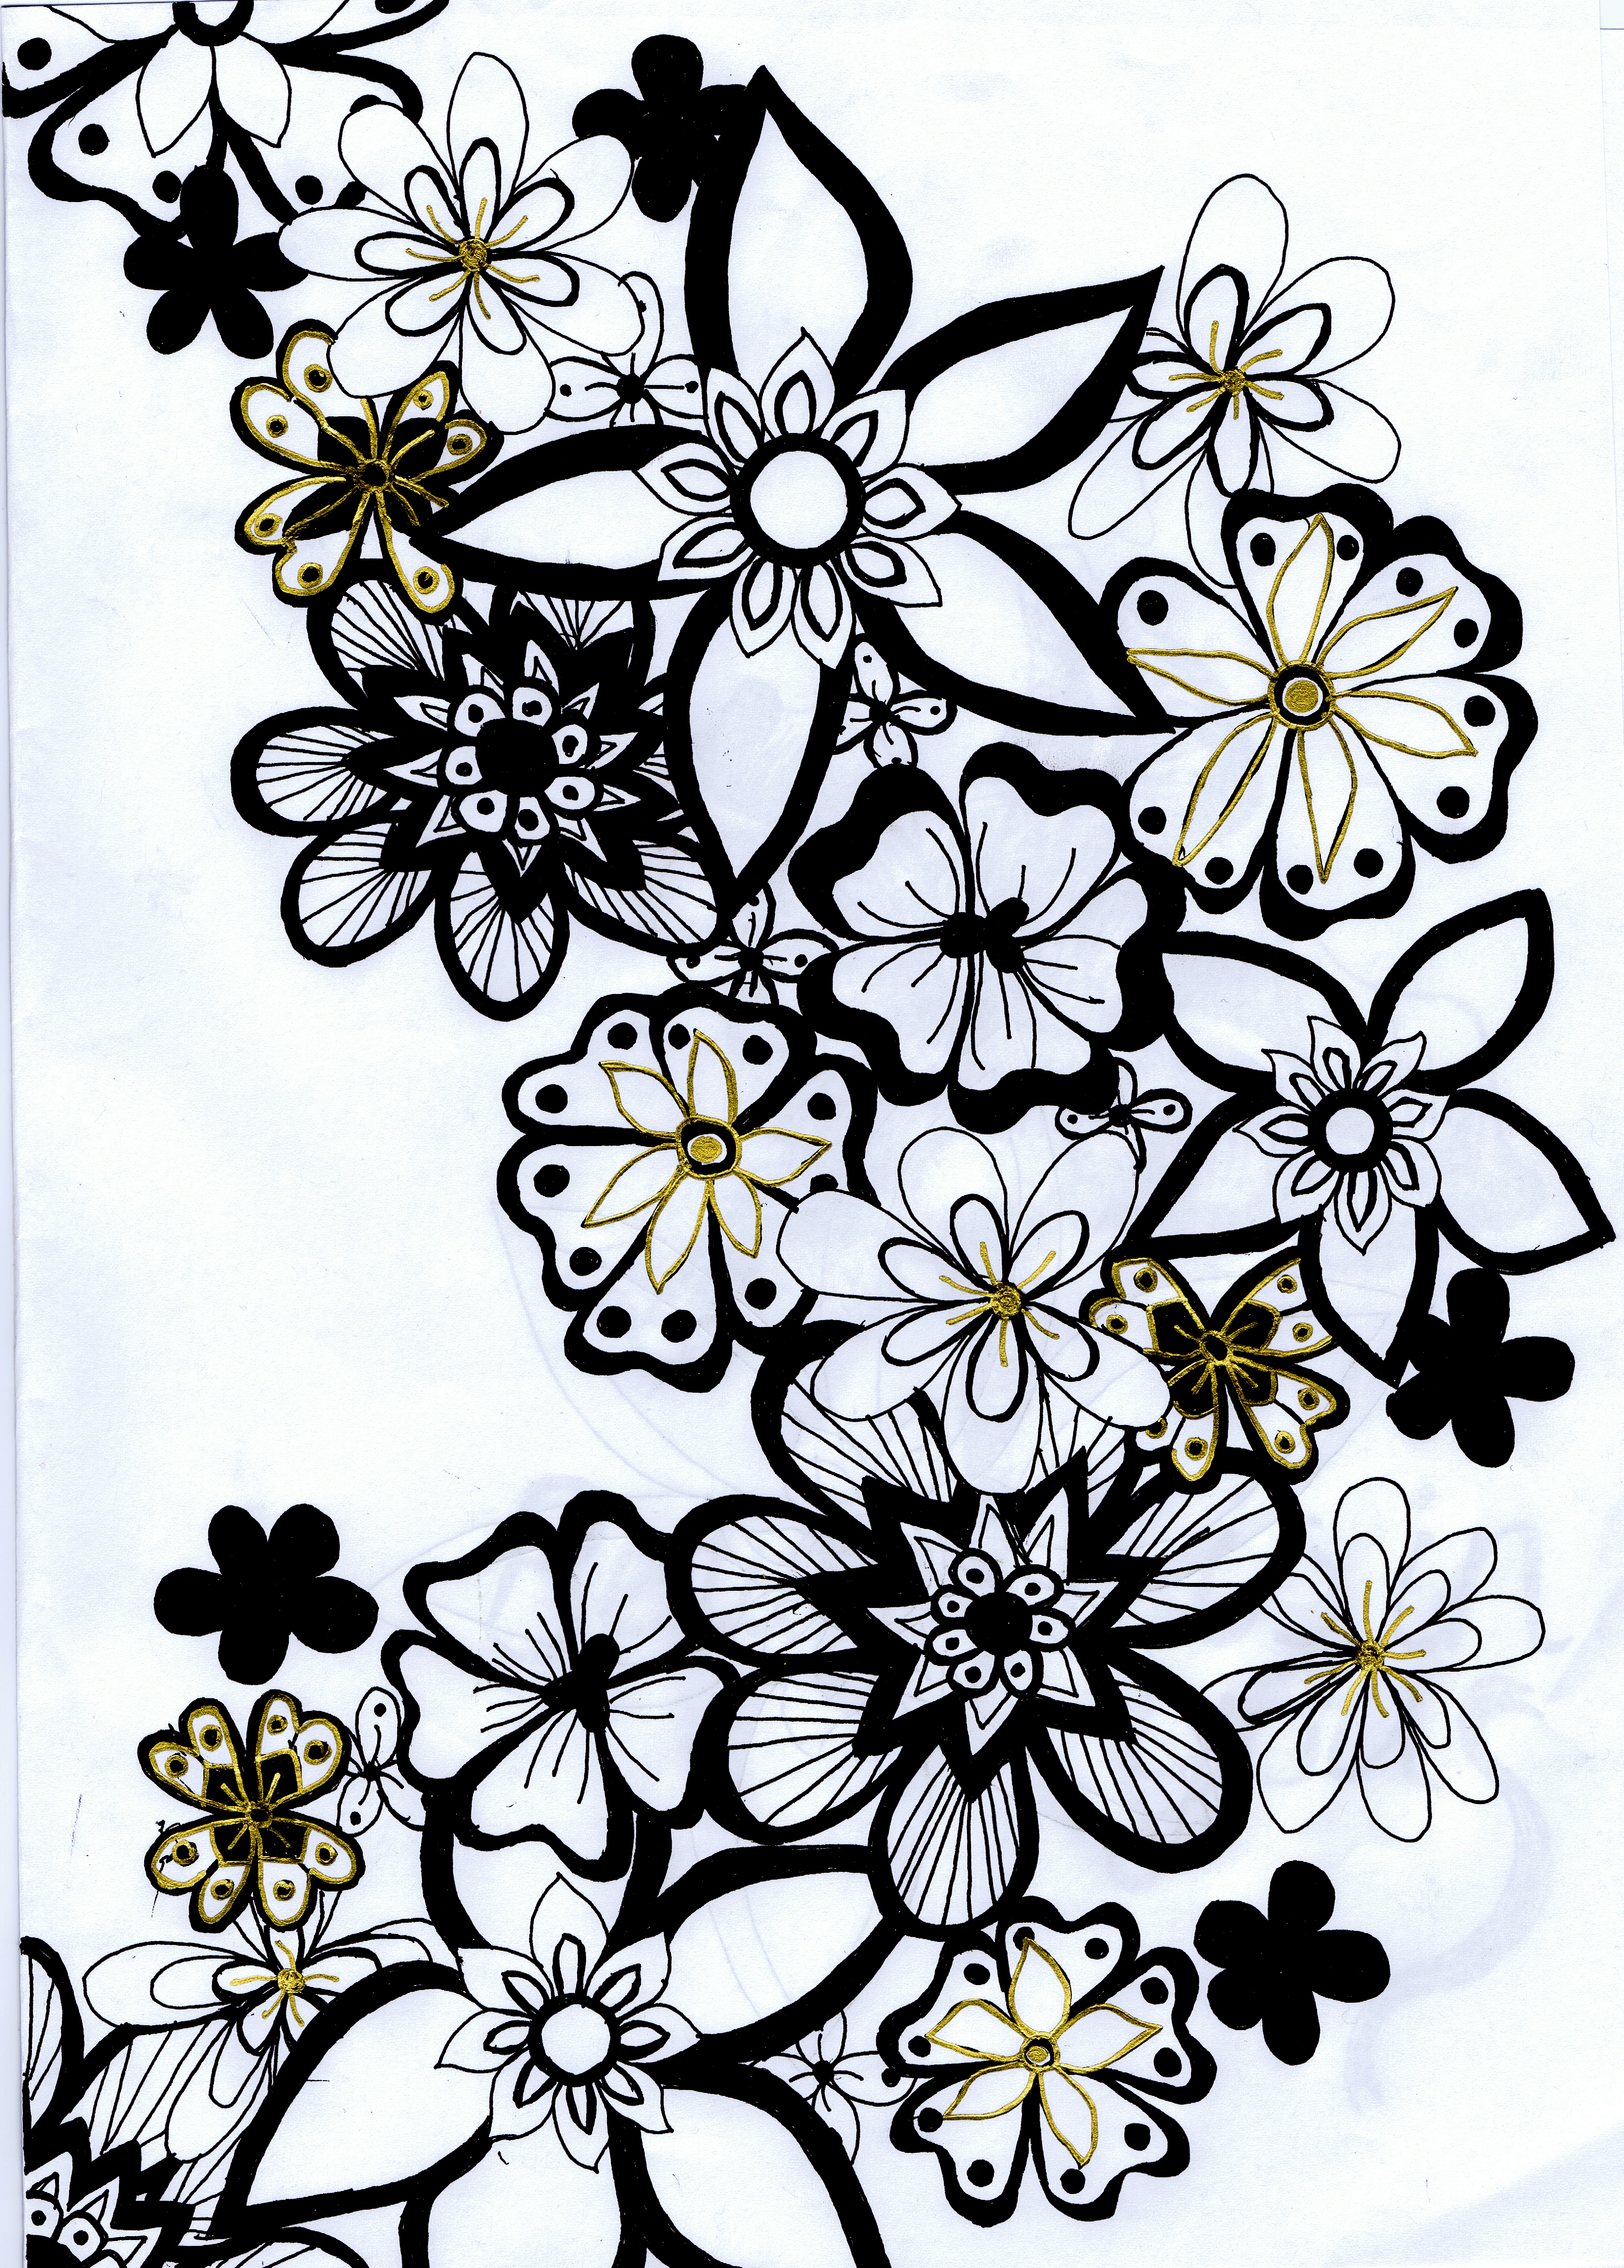 th?id=OIP.W76PxAmbYaSujkOWstbVQQDWEs&pid=15.1 likewise daisies flower coloring pages on coloring book daisy flower likewise coloring book daisy flower 2 on coloring book daisy flower including coloring book daisy flower 3 on coloring book daisy flower together with coloring book daisy flower 4 on coloring book daisy flower